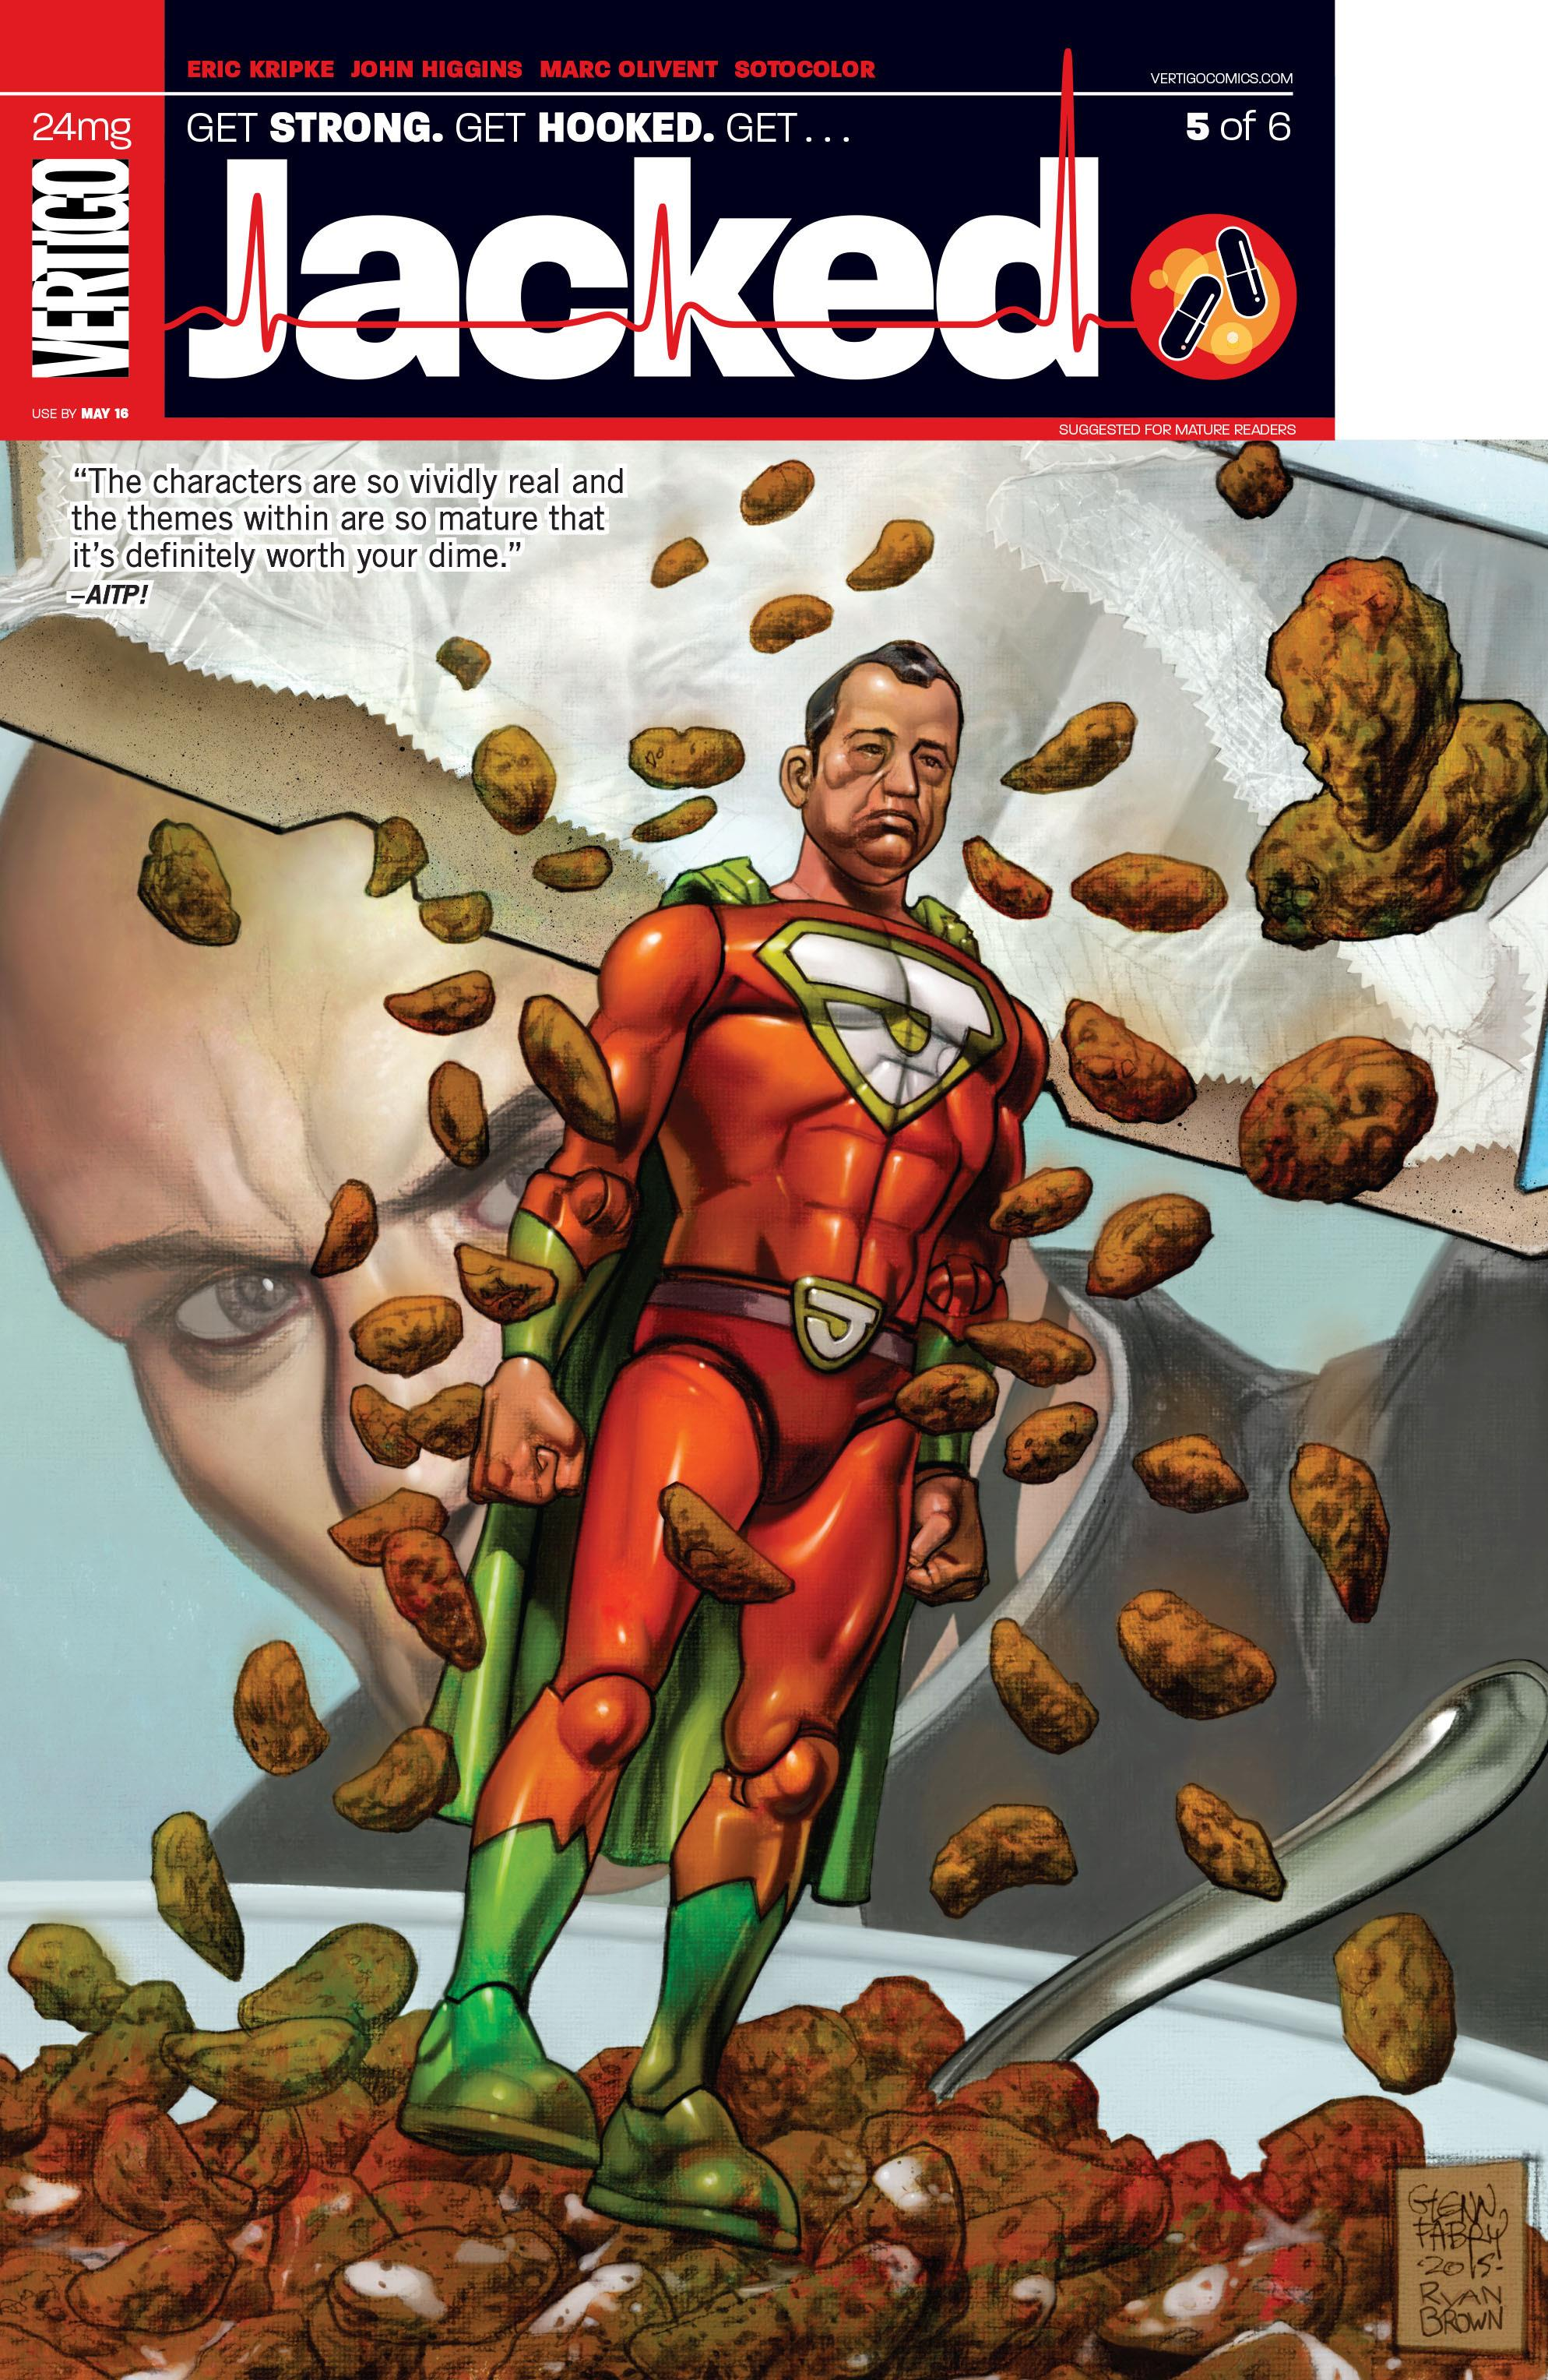 COMIC REVIEW: Jacked #5 - One Bad Trip